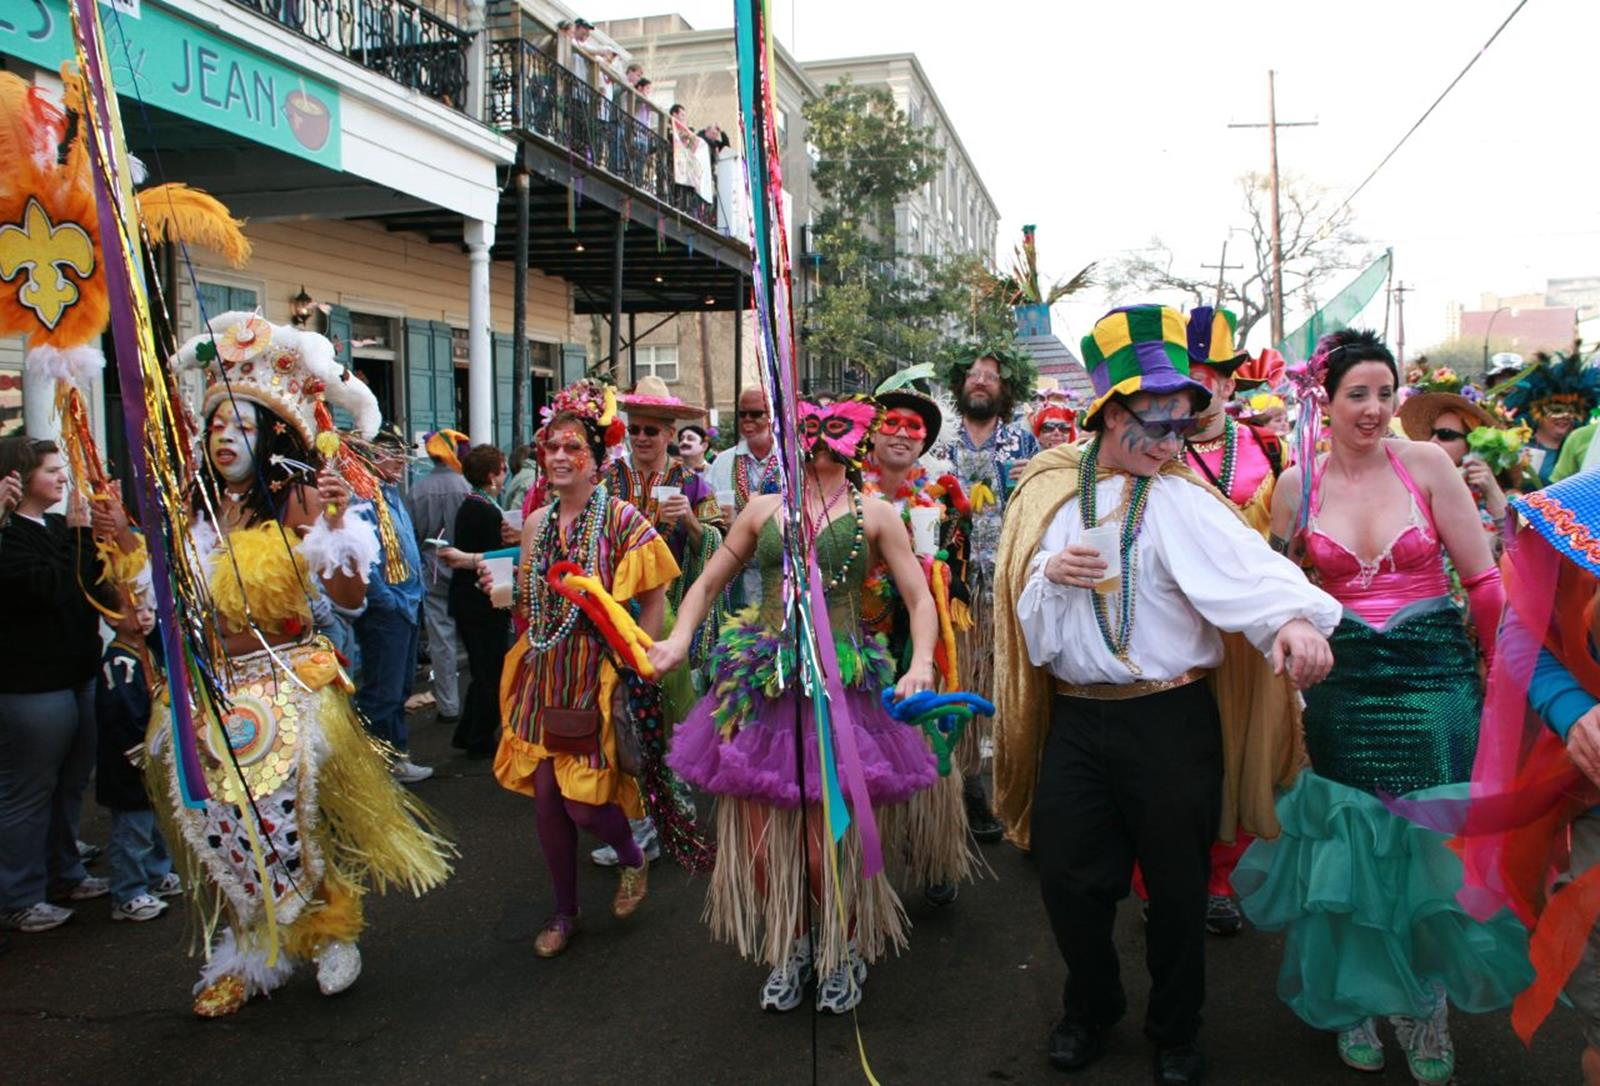 Group Travelers Explore The Religious Cultures In New Orleans